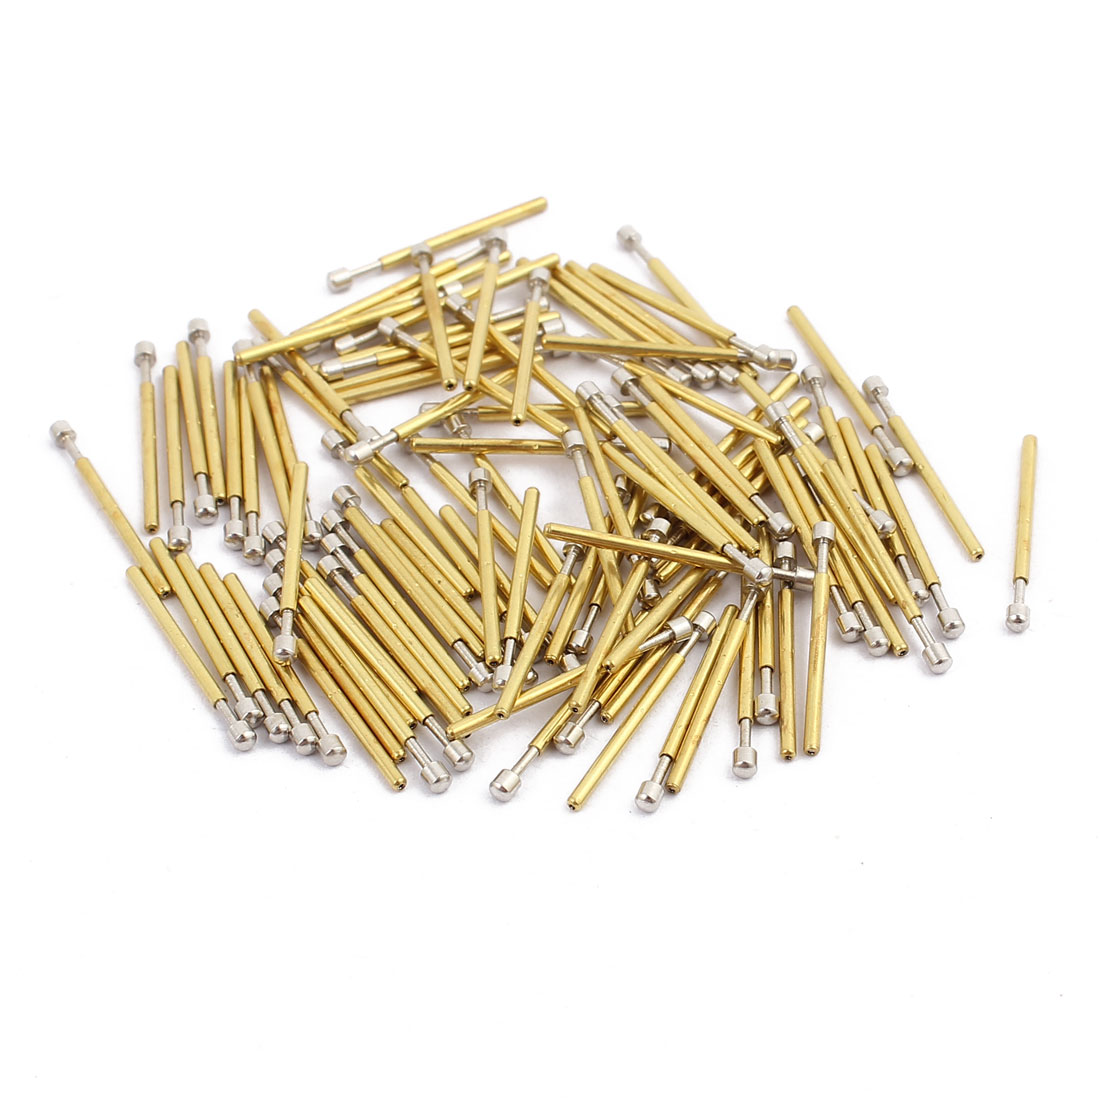 100pcs P75-D3 1.0mm Dia 16.8mm Length Metal Spring Pressure Test Probe Needle